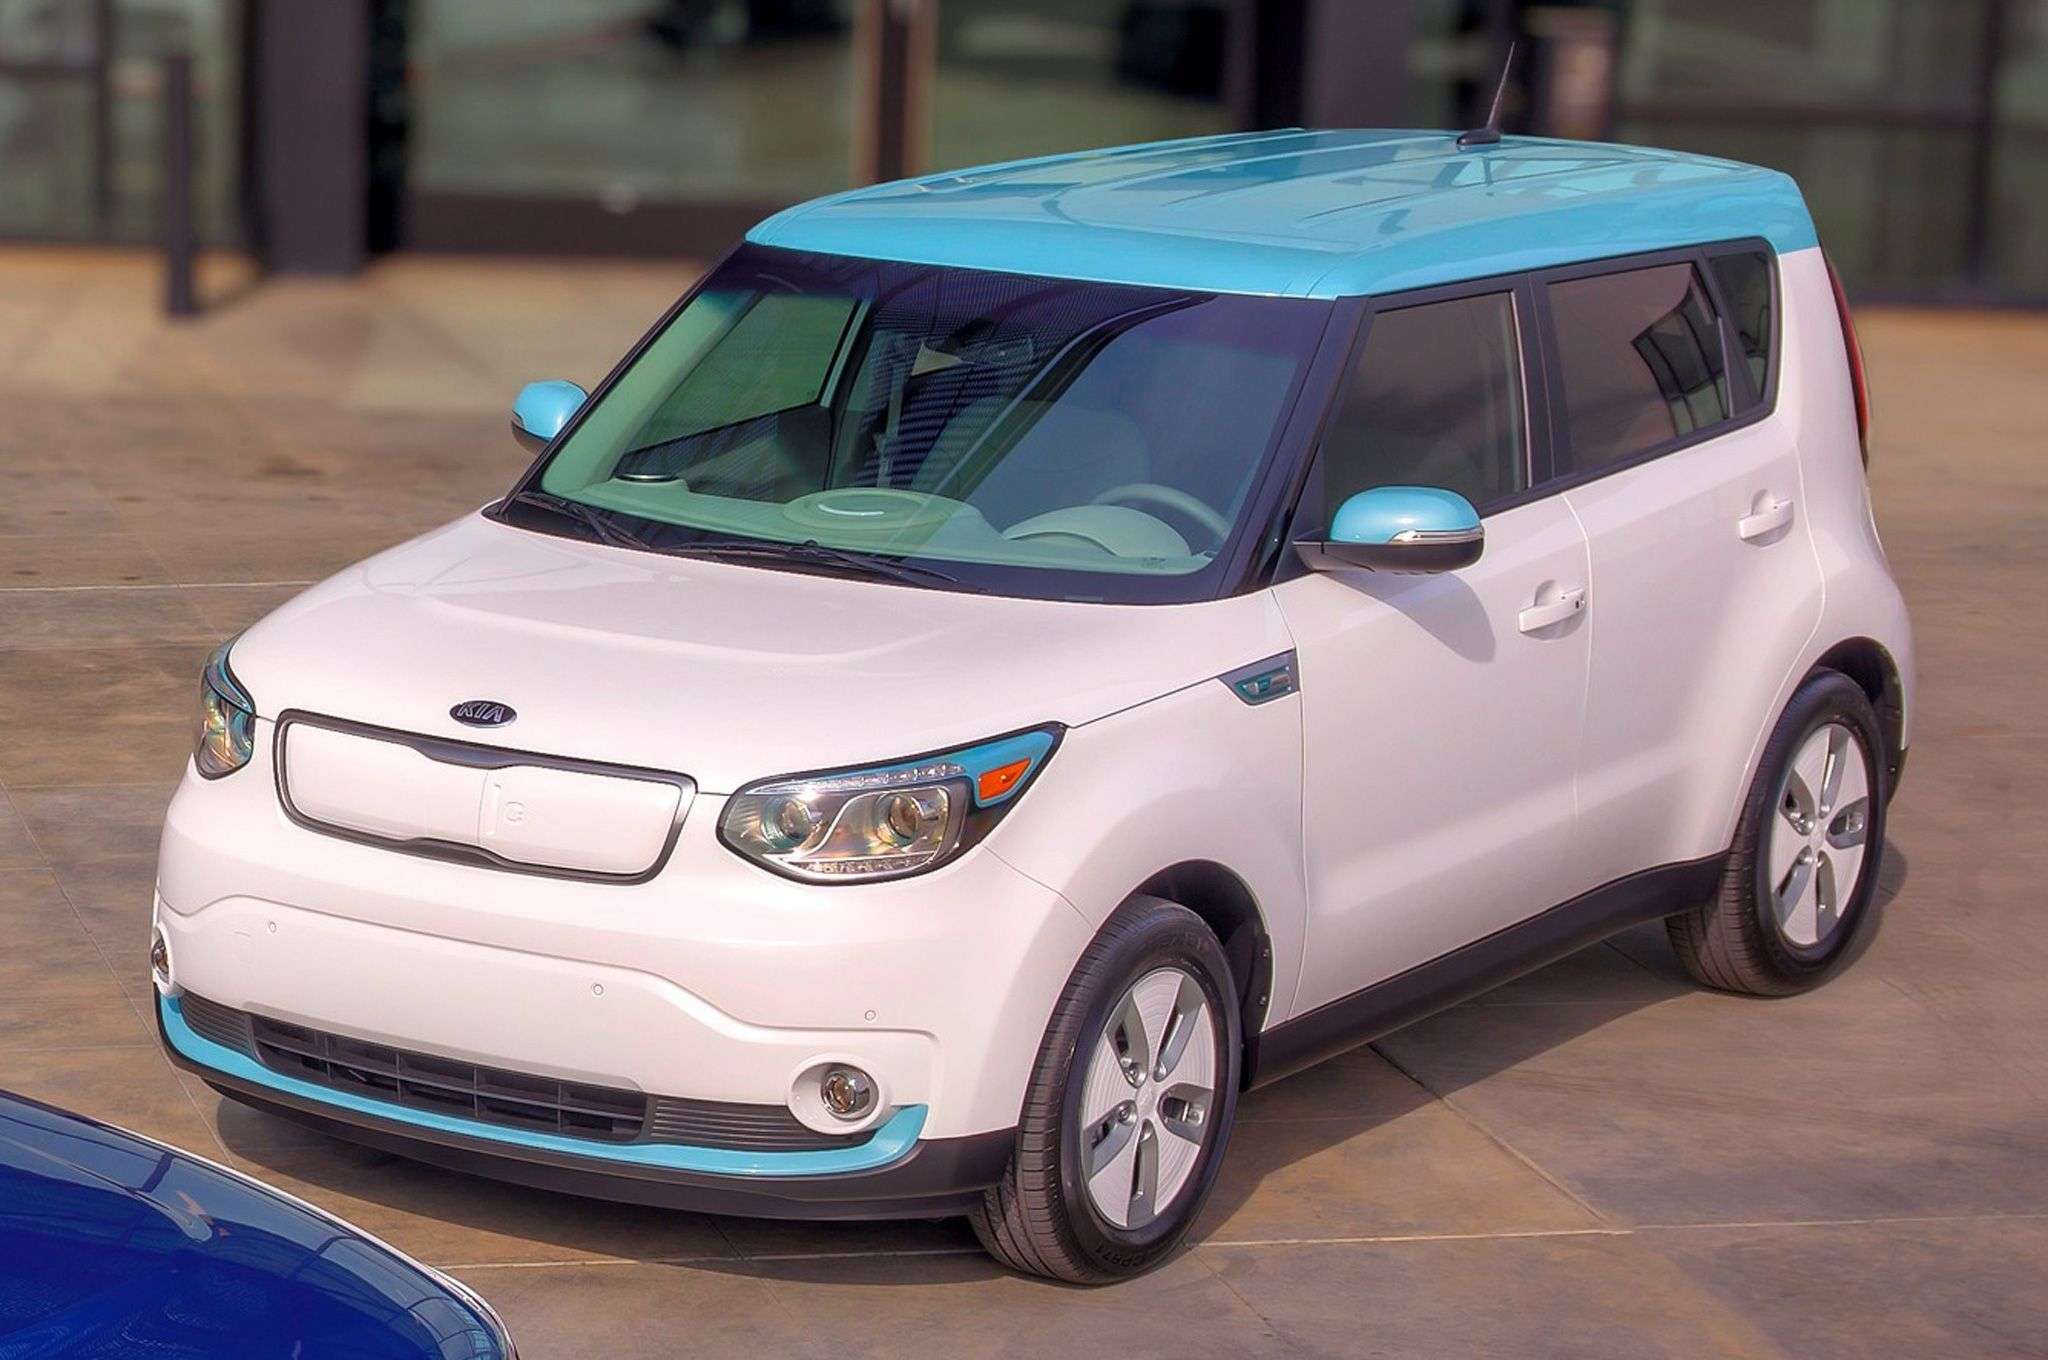 2016 kia soul redesign and review http futurecarson com 2016